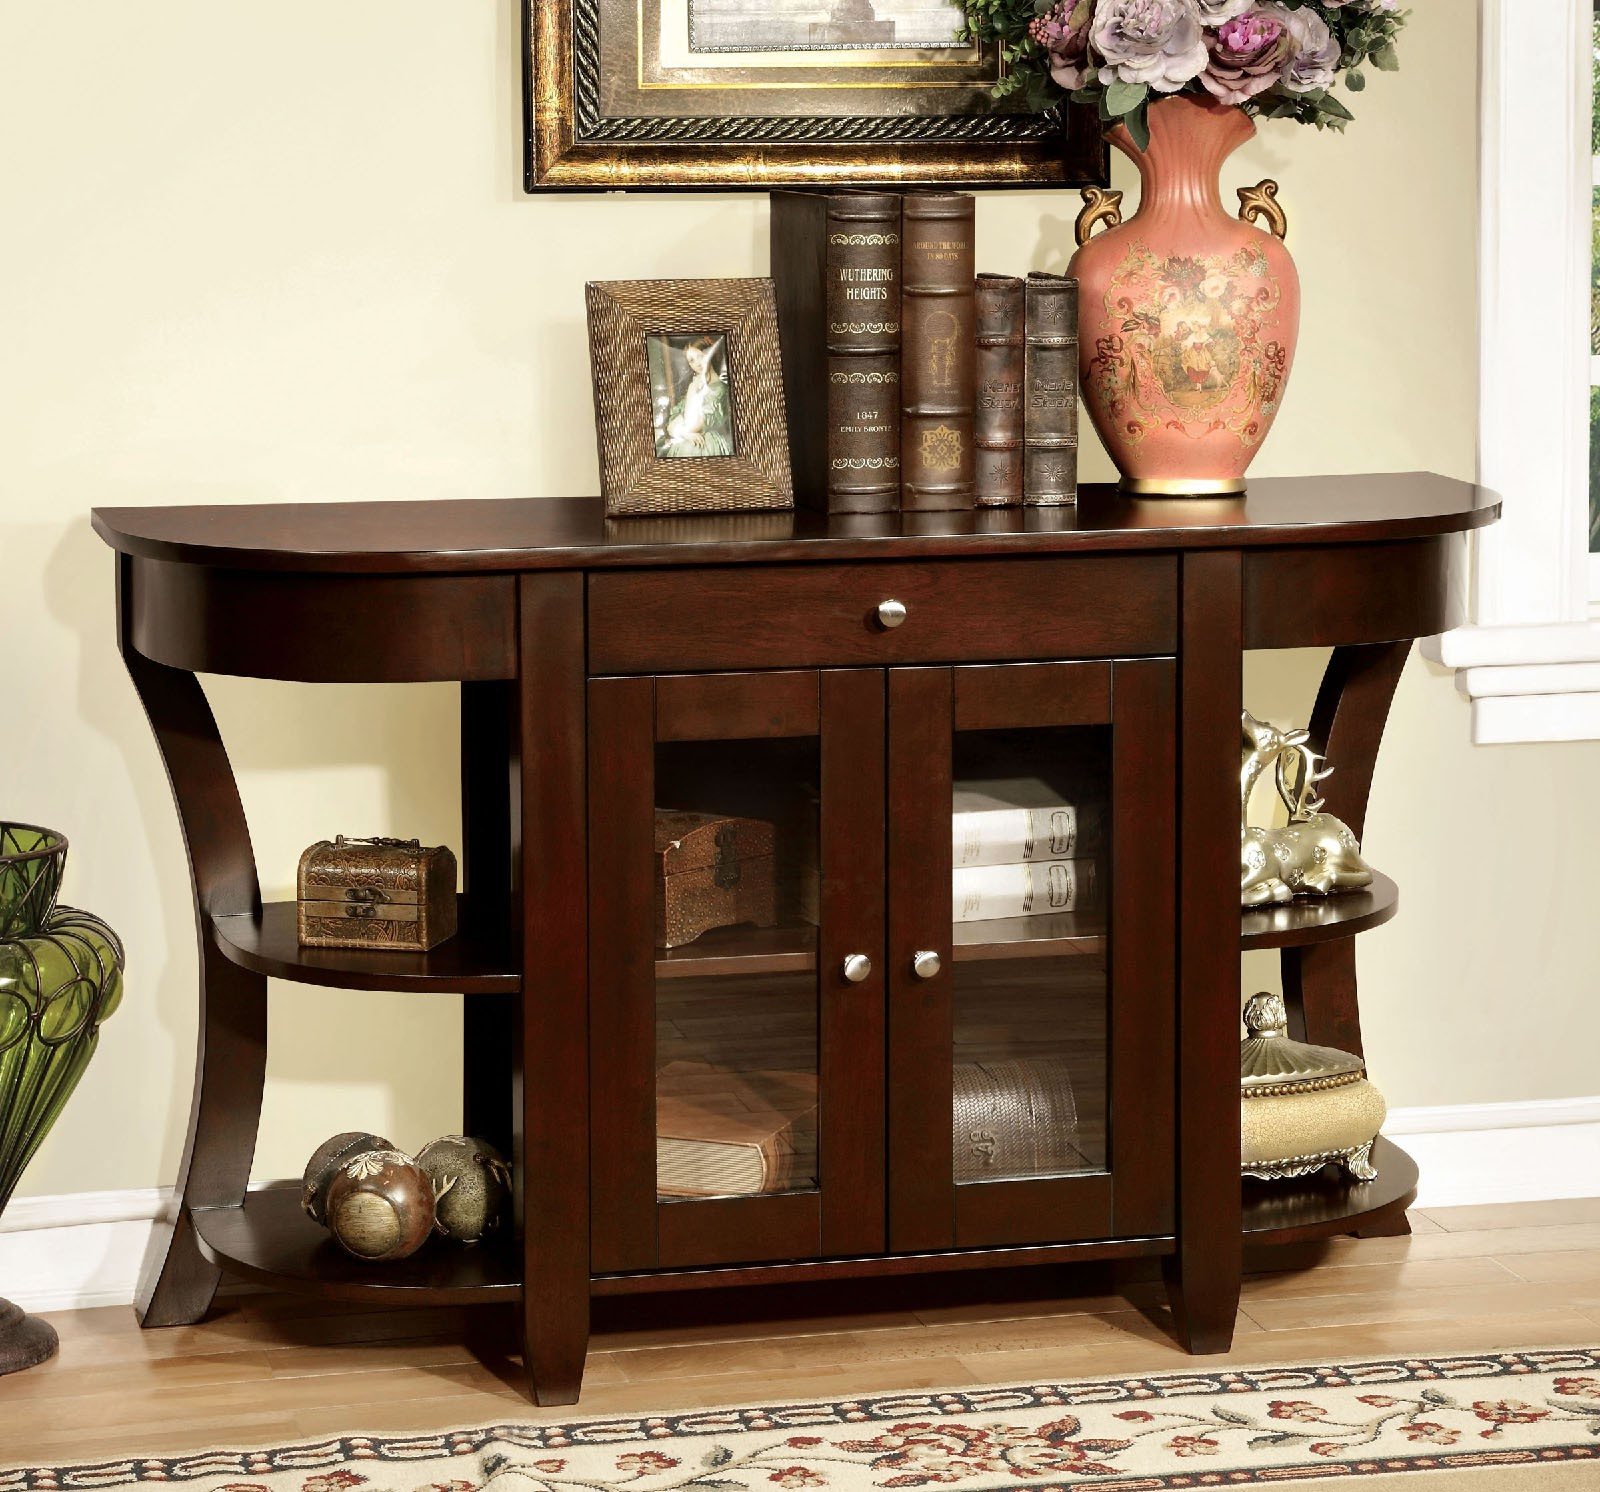 hallway console cabinet. Simple Relax 1PerfectChoiceell Hallway Console Sofa Table Cabinet Drawer Open Shelves Wood Dark Cherry